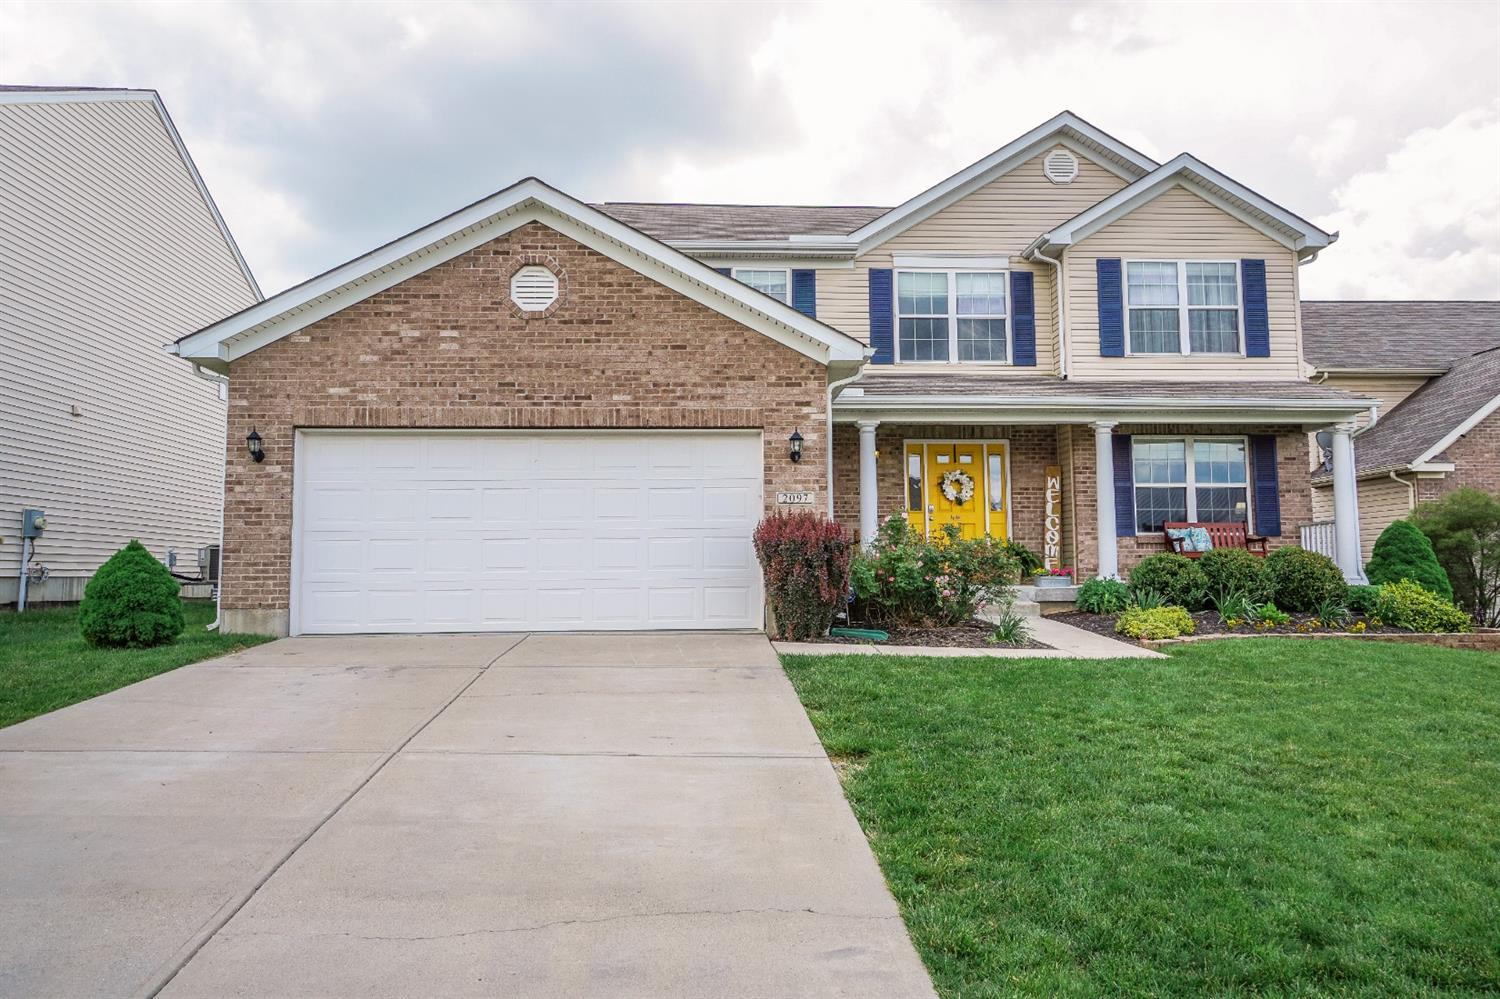 Property for sale at 2097 Prairie Clover Drive, Turtle Creek Twp,  Ohio 45036